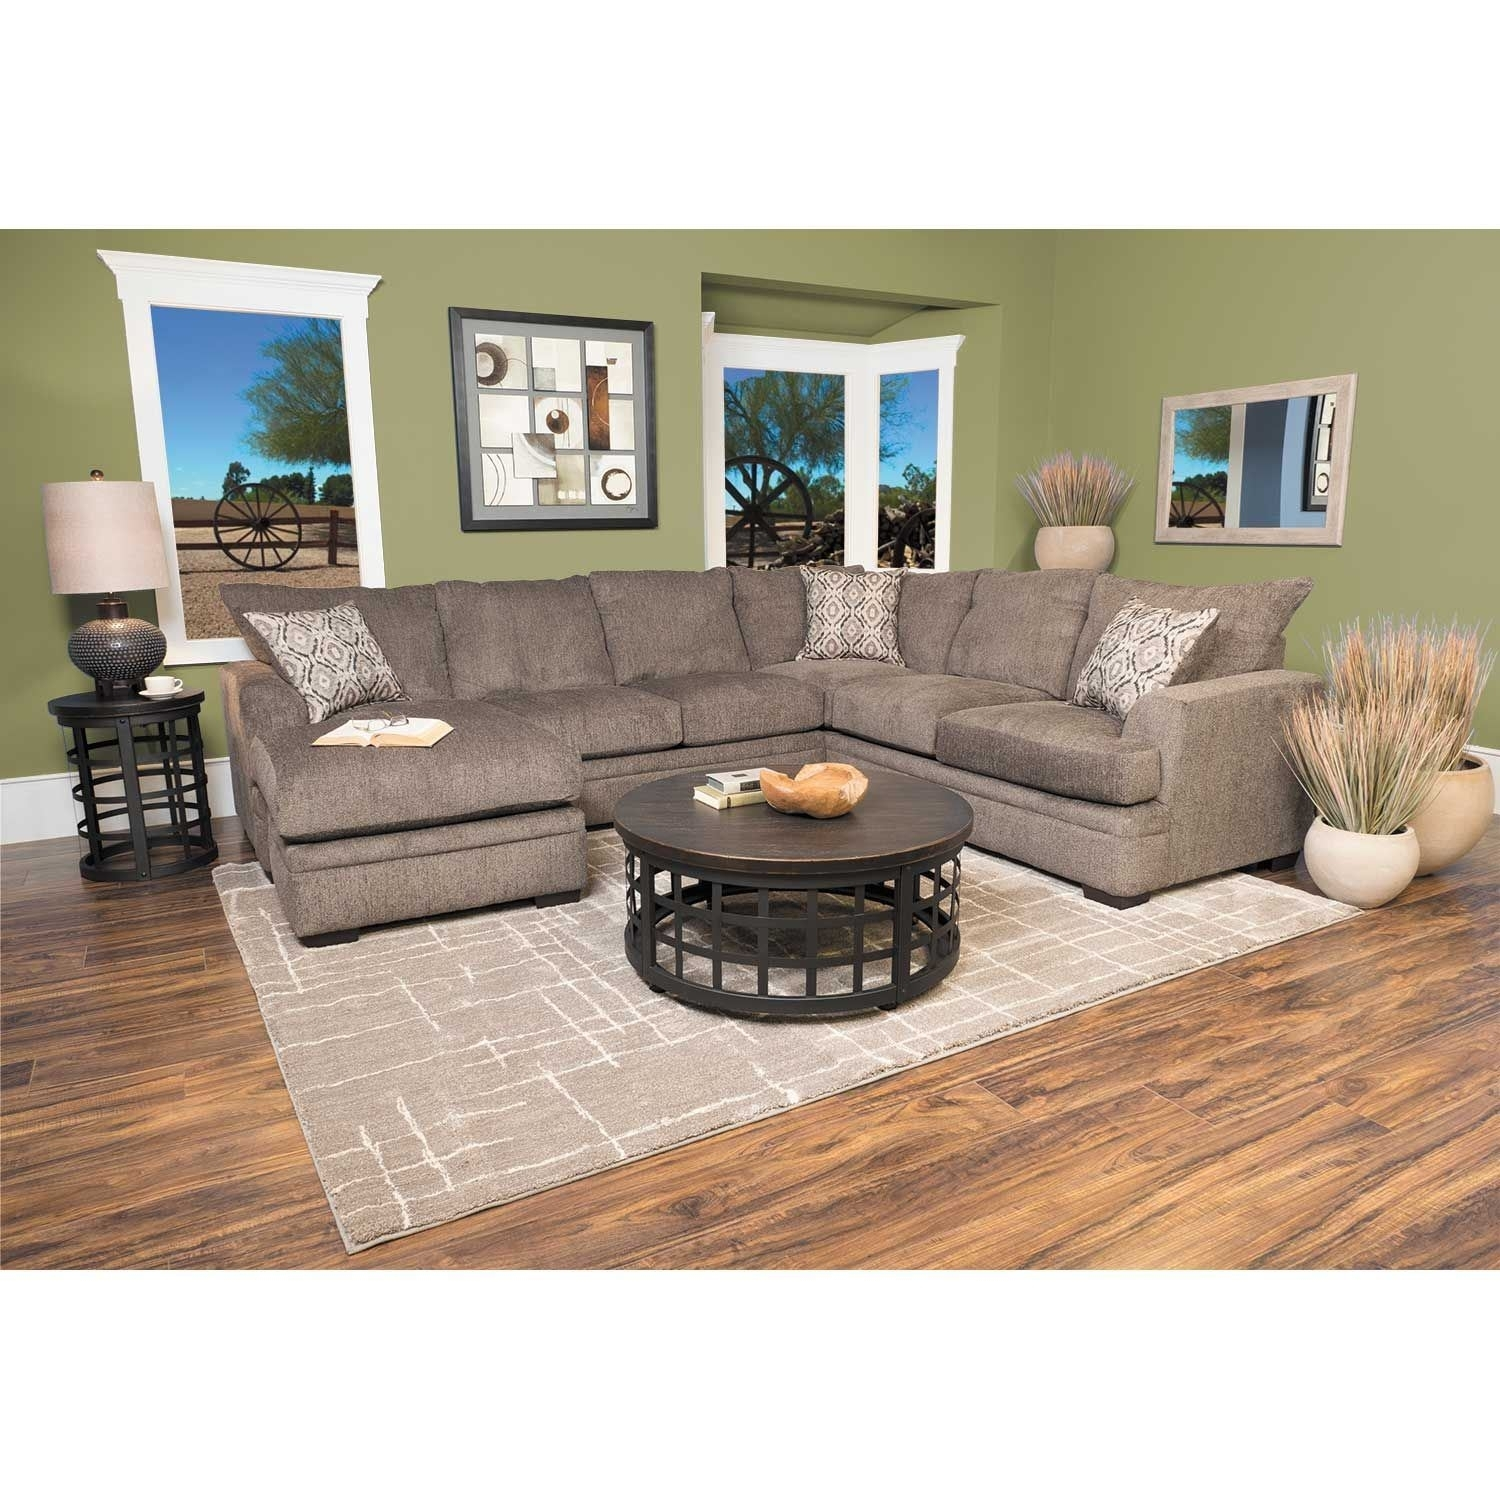 2Pc Pewter Raf Sectional W/chaise C2 68Rc 2Pc | Afw | Afw In Evan 2 Piece Sectionals With Raf Chaise (Gallery 13 of 30)